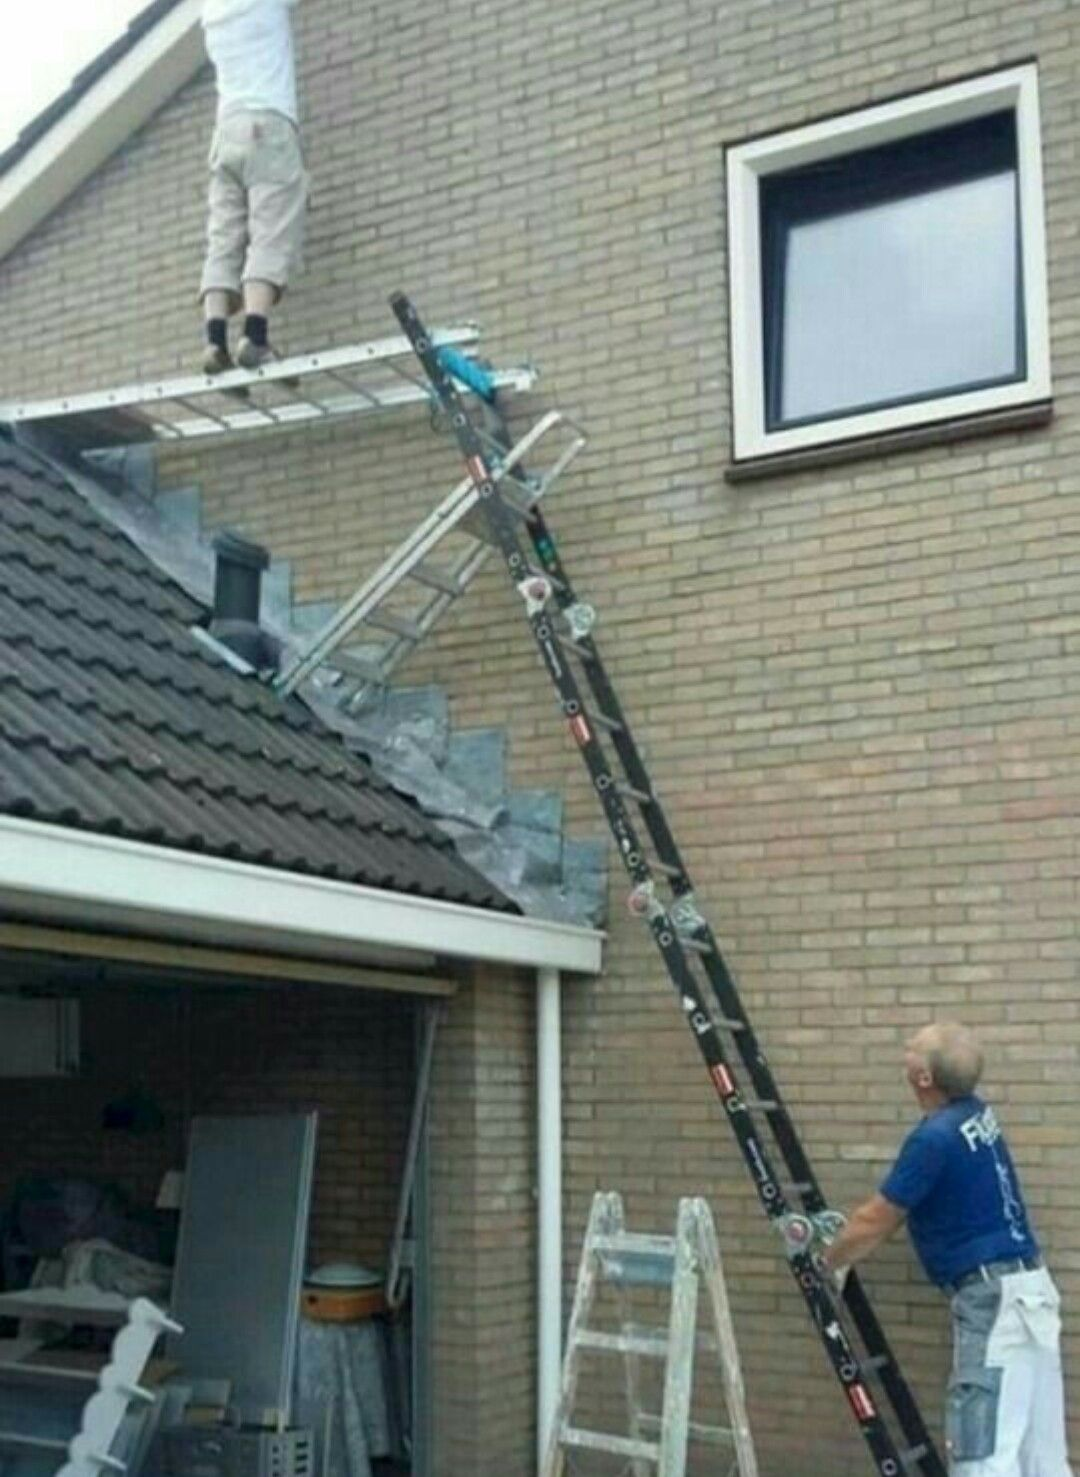 Pin By Integro Roofing On What Could Possibly Go Wrong Roofing Humor Funny